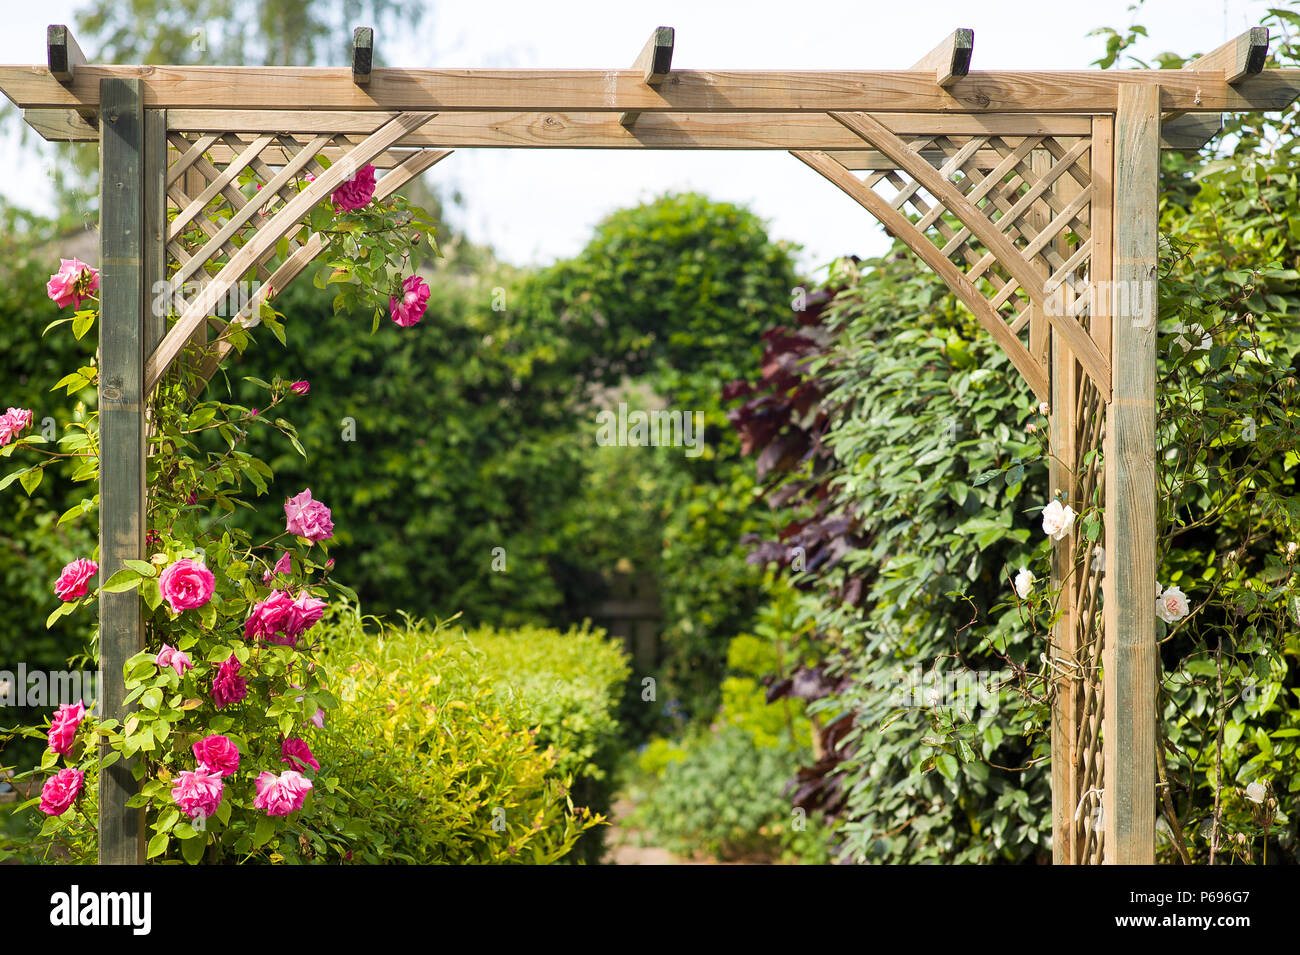 Rosa Zephirine Drouhin soon colonises a new wooden arch in an English garden - Stock Image